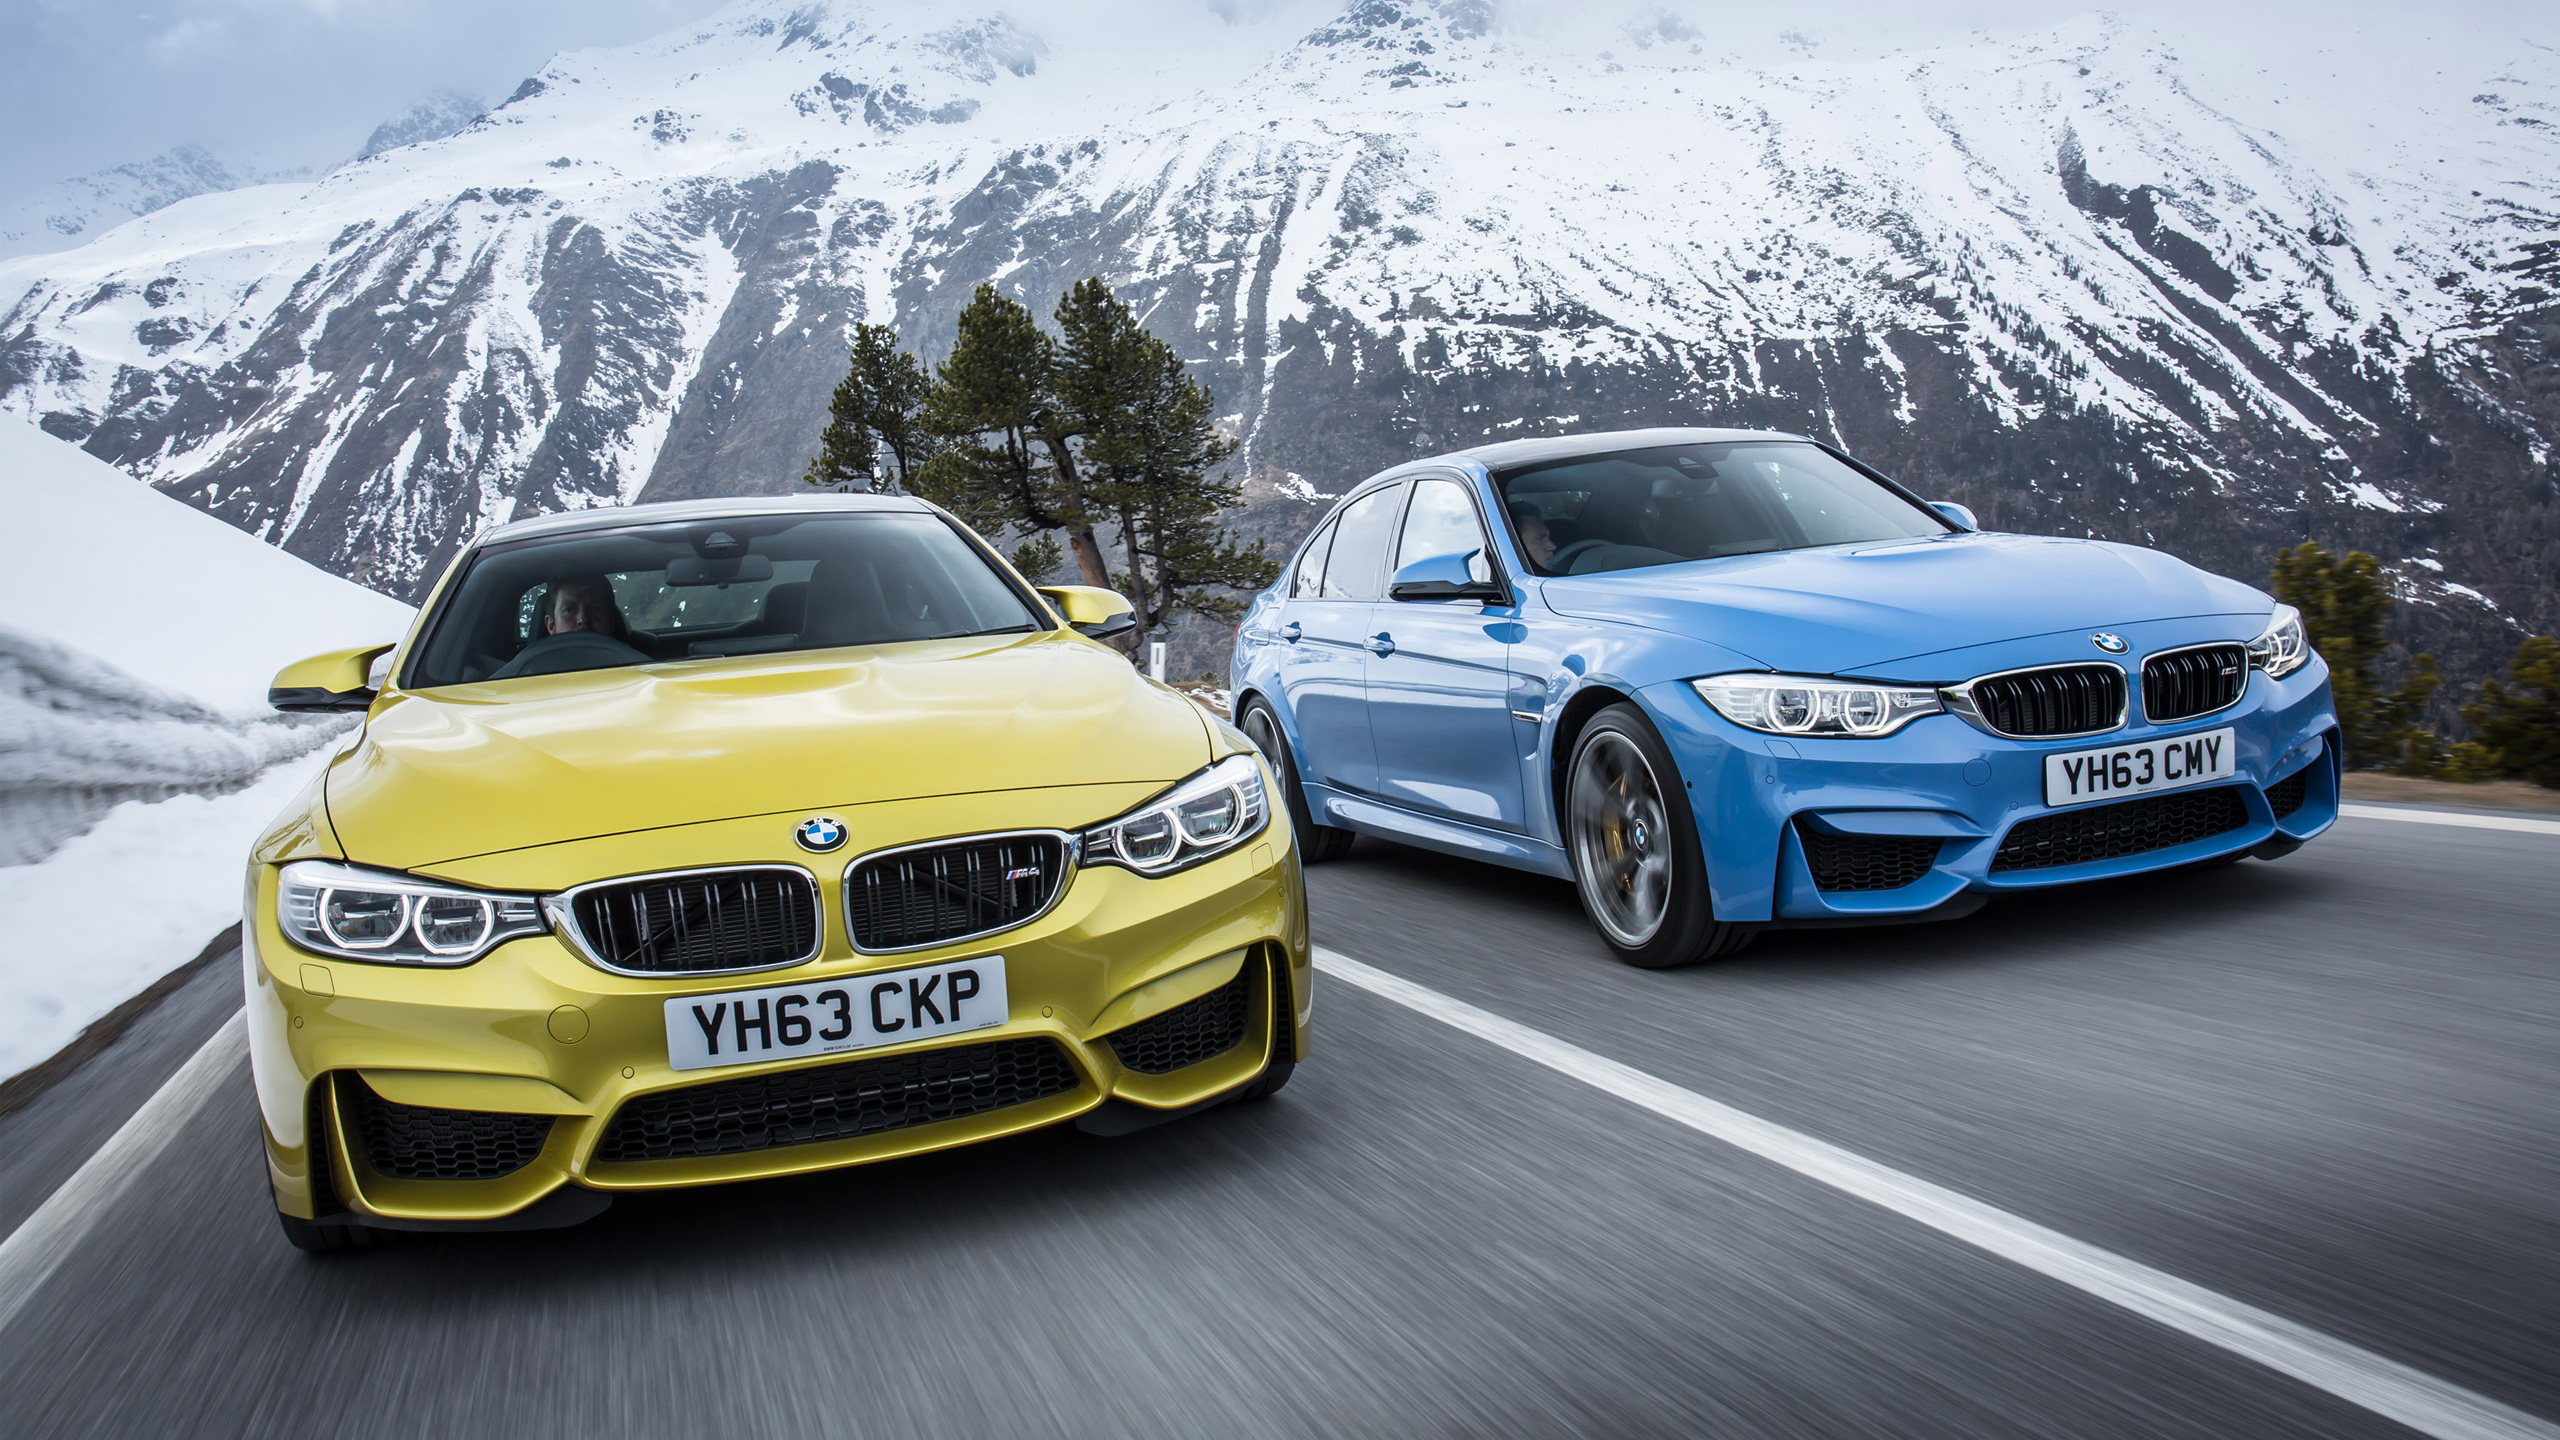 2014 Bmw M4 Coupe Uk Wallpaper Hd Car Wallpapers Id 4606